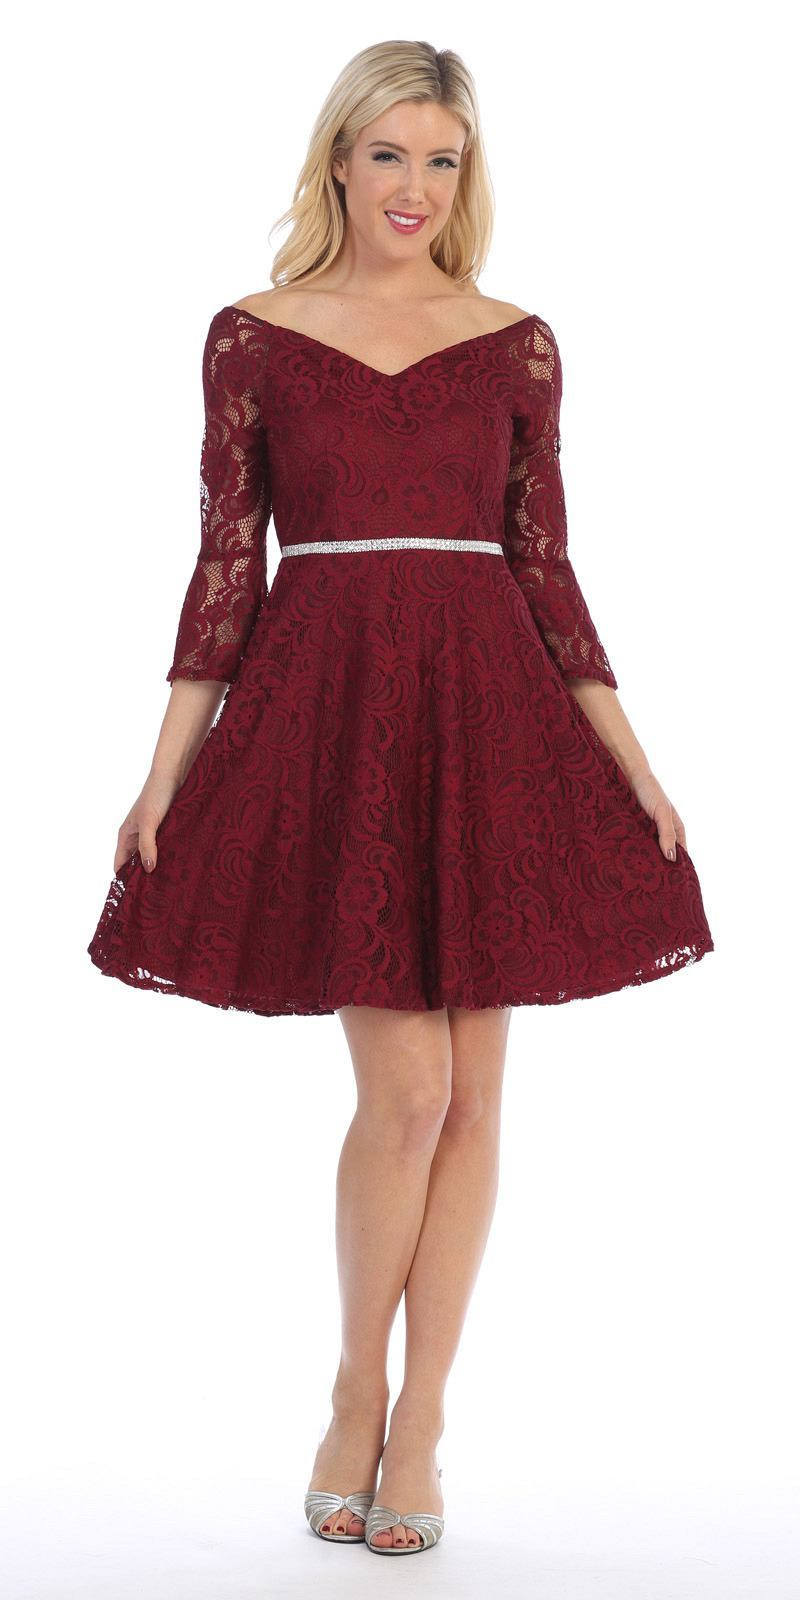 Lace V Neck Wedding Guest Dress With Bell Sleeves Burgundy